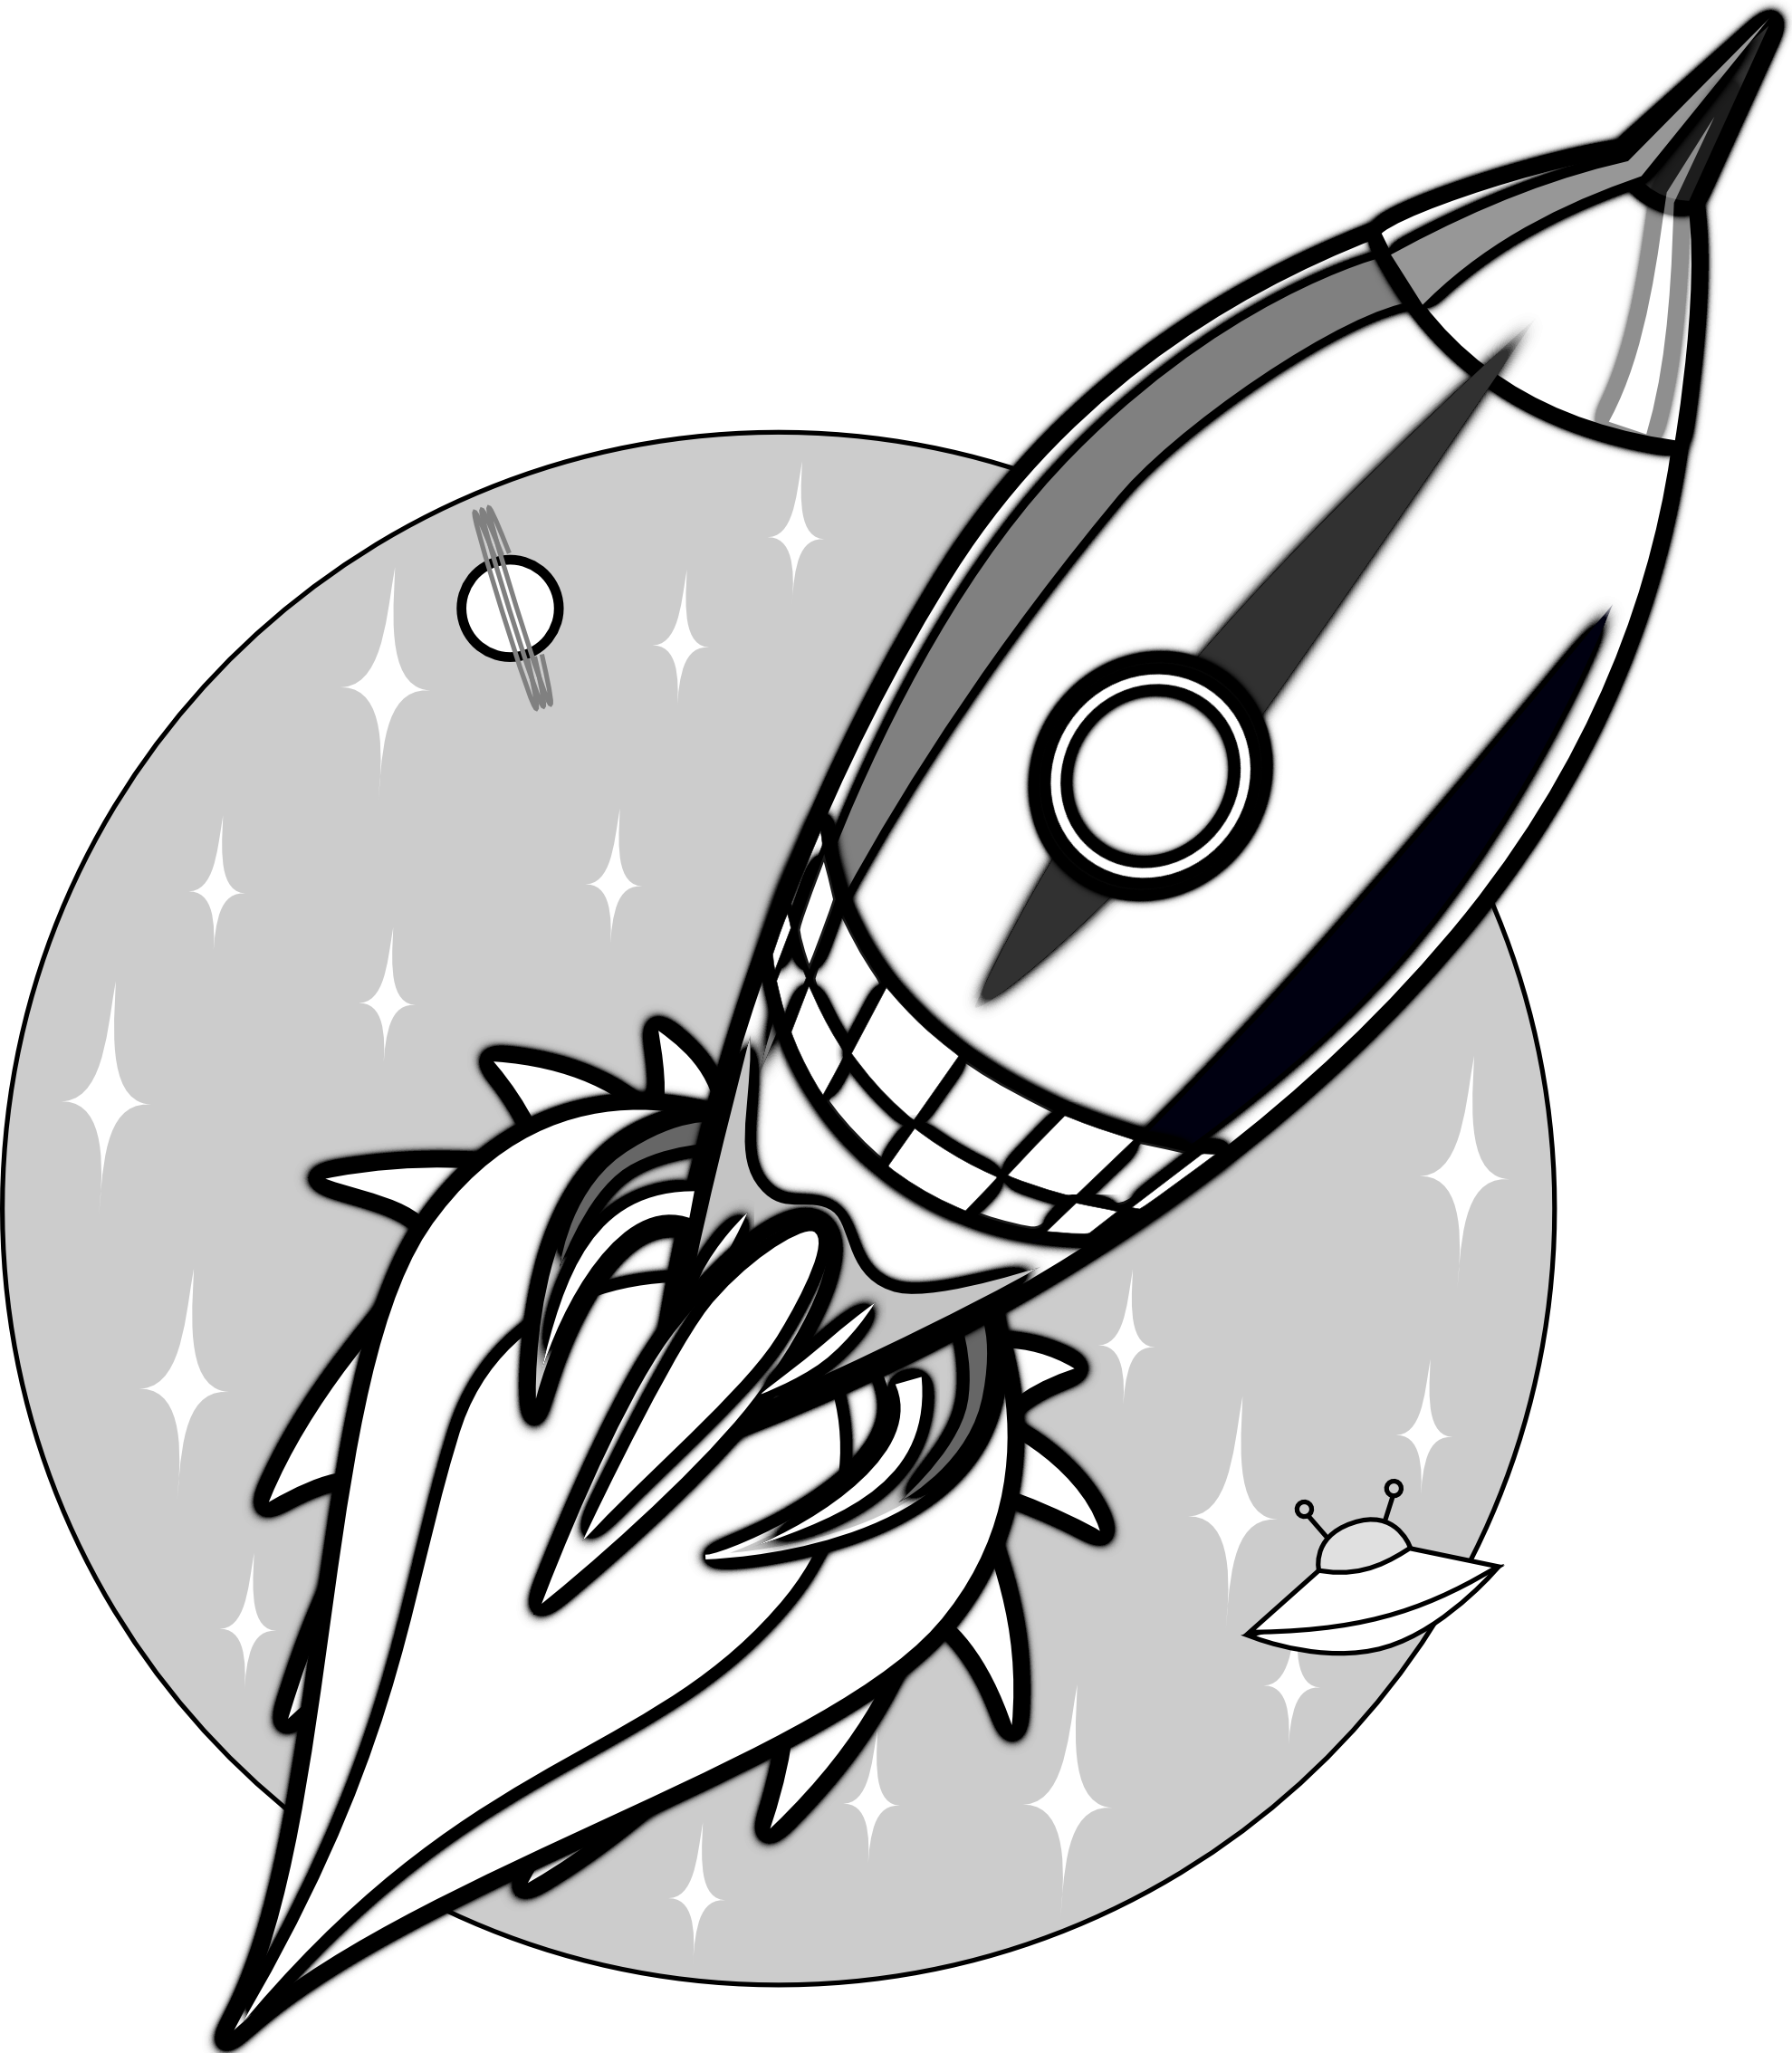 Free Rocket Black And White Clipart, Download Free Clip Art.